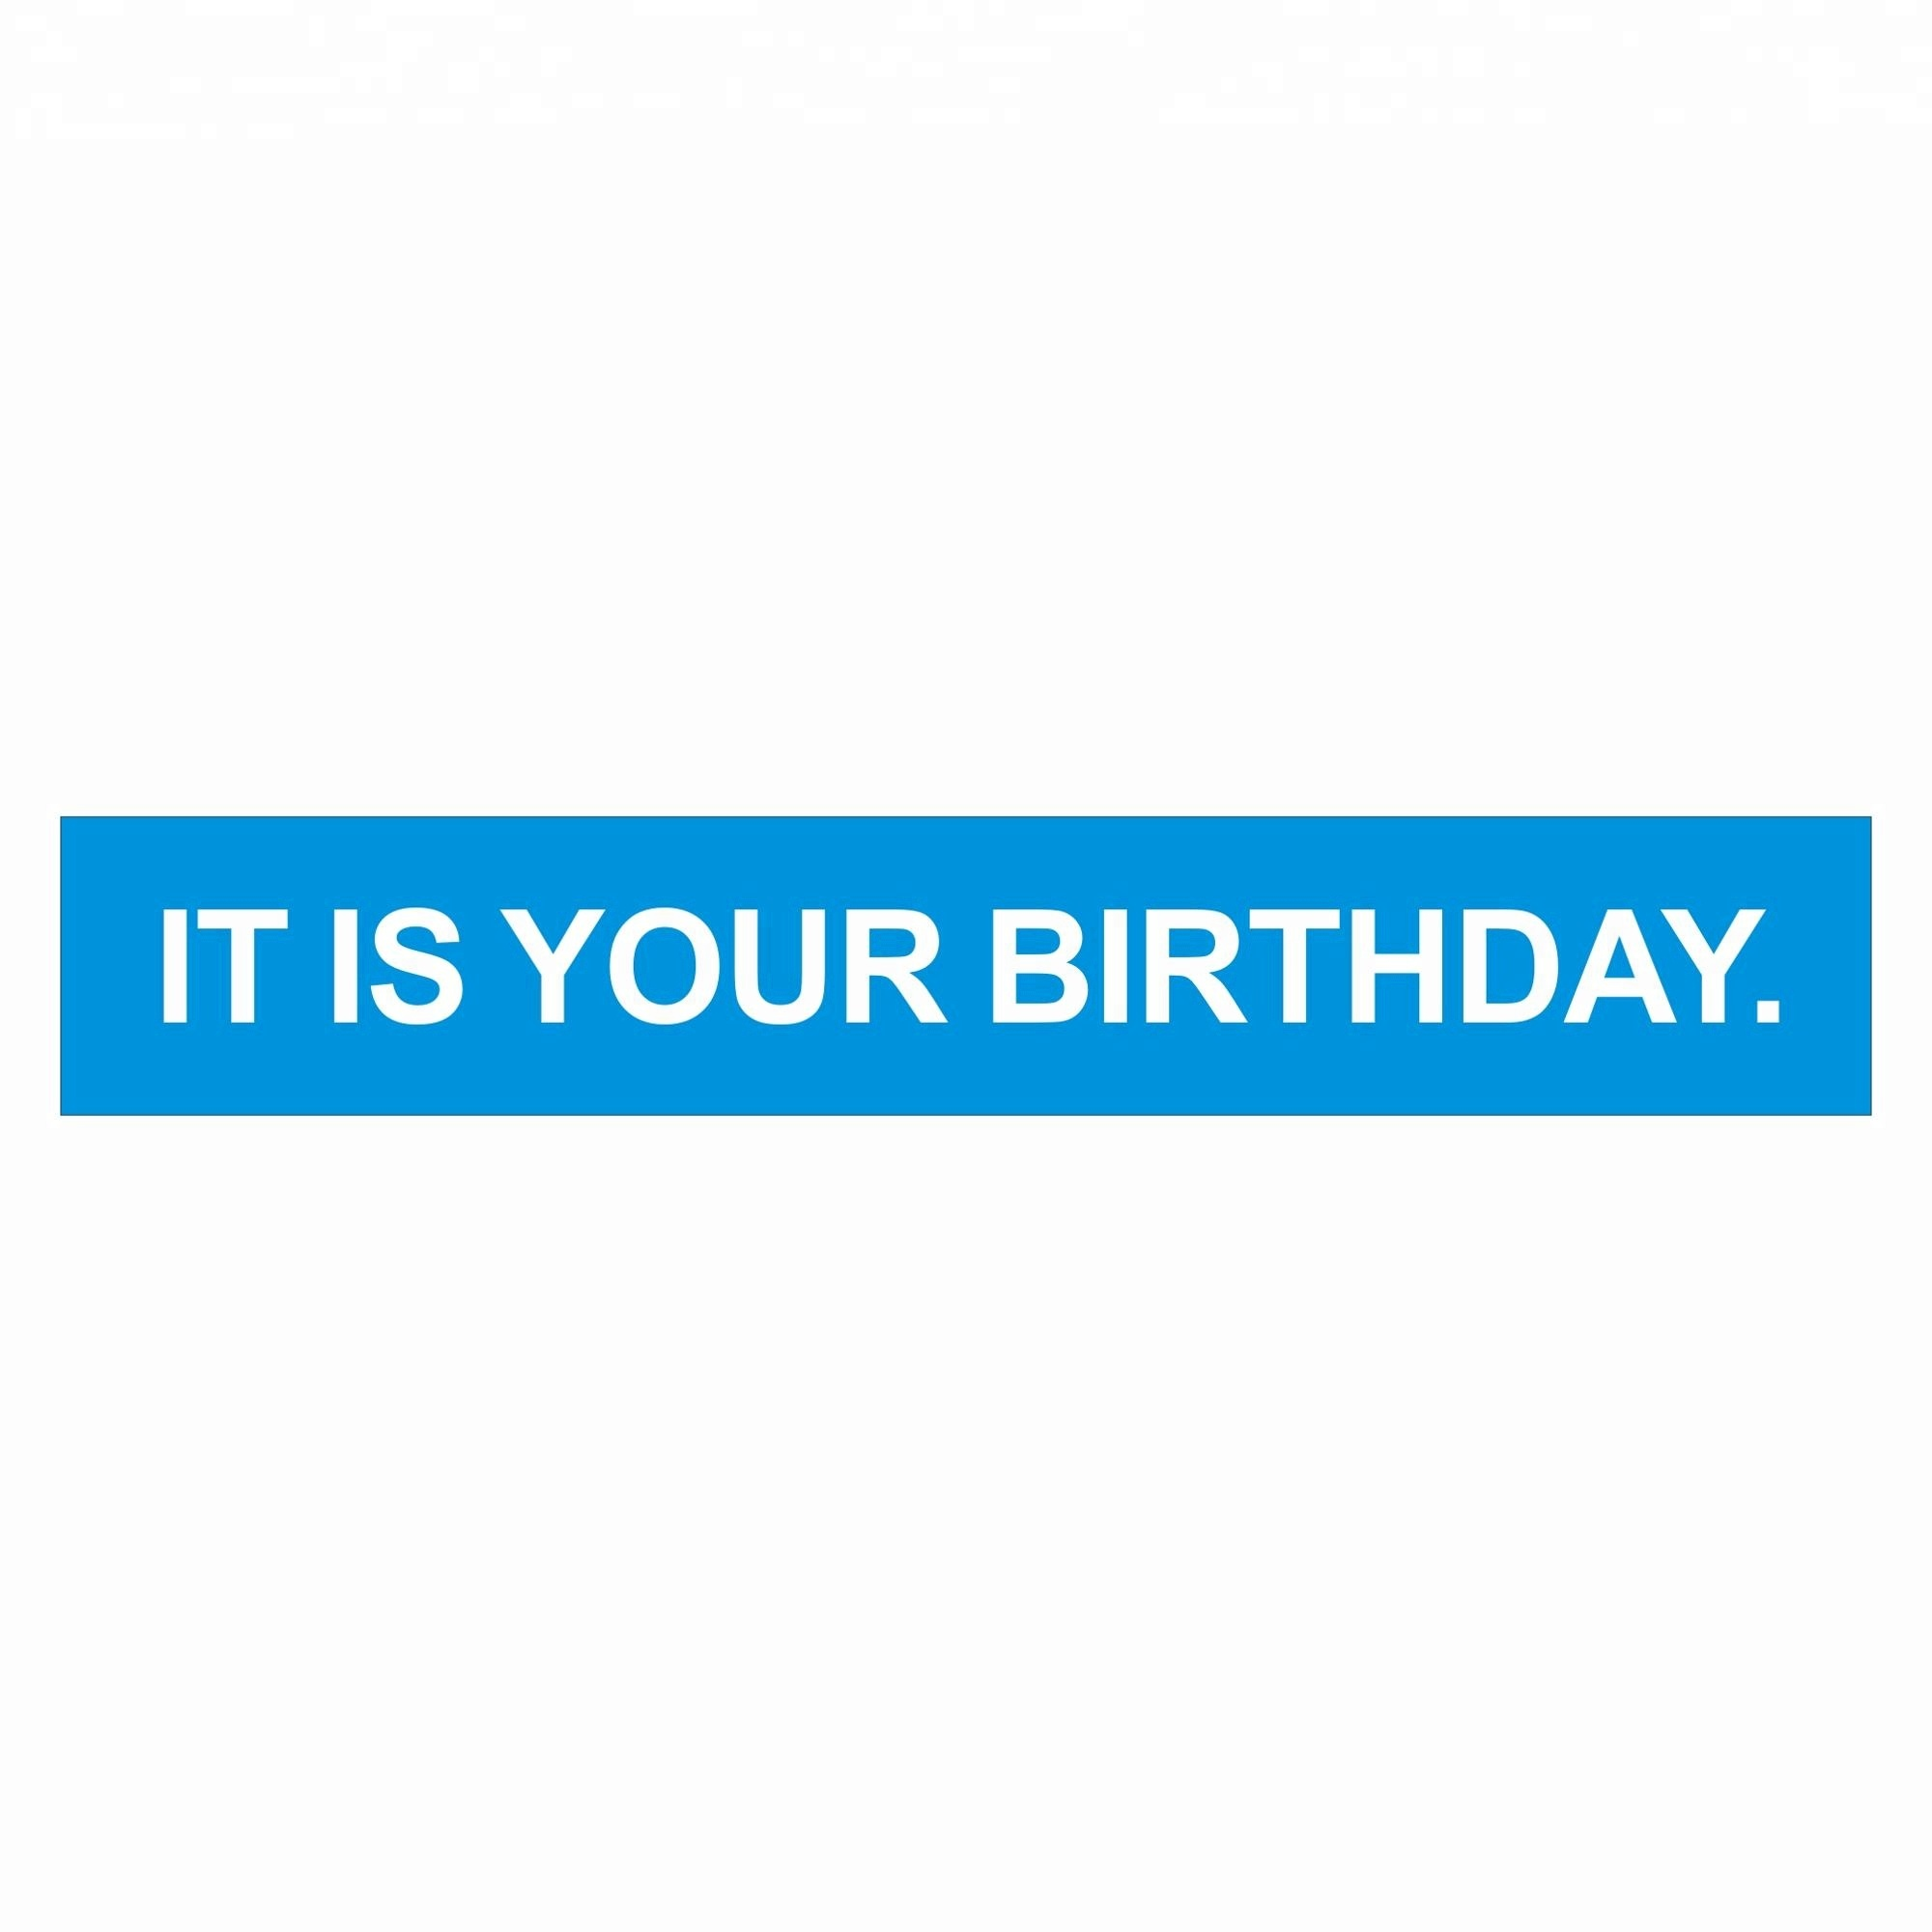 Vinyl W <strong>Resistant</strong> Hanging Ring IT IS YOUR BIRTHDAY Banner